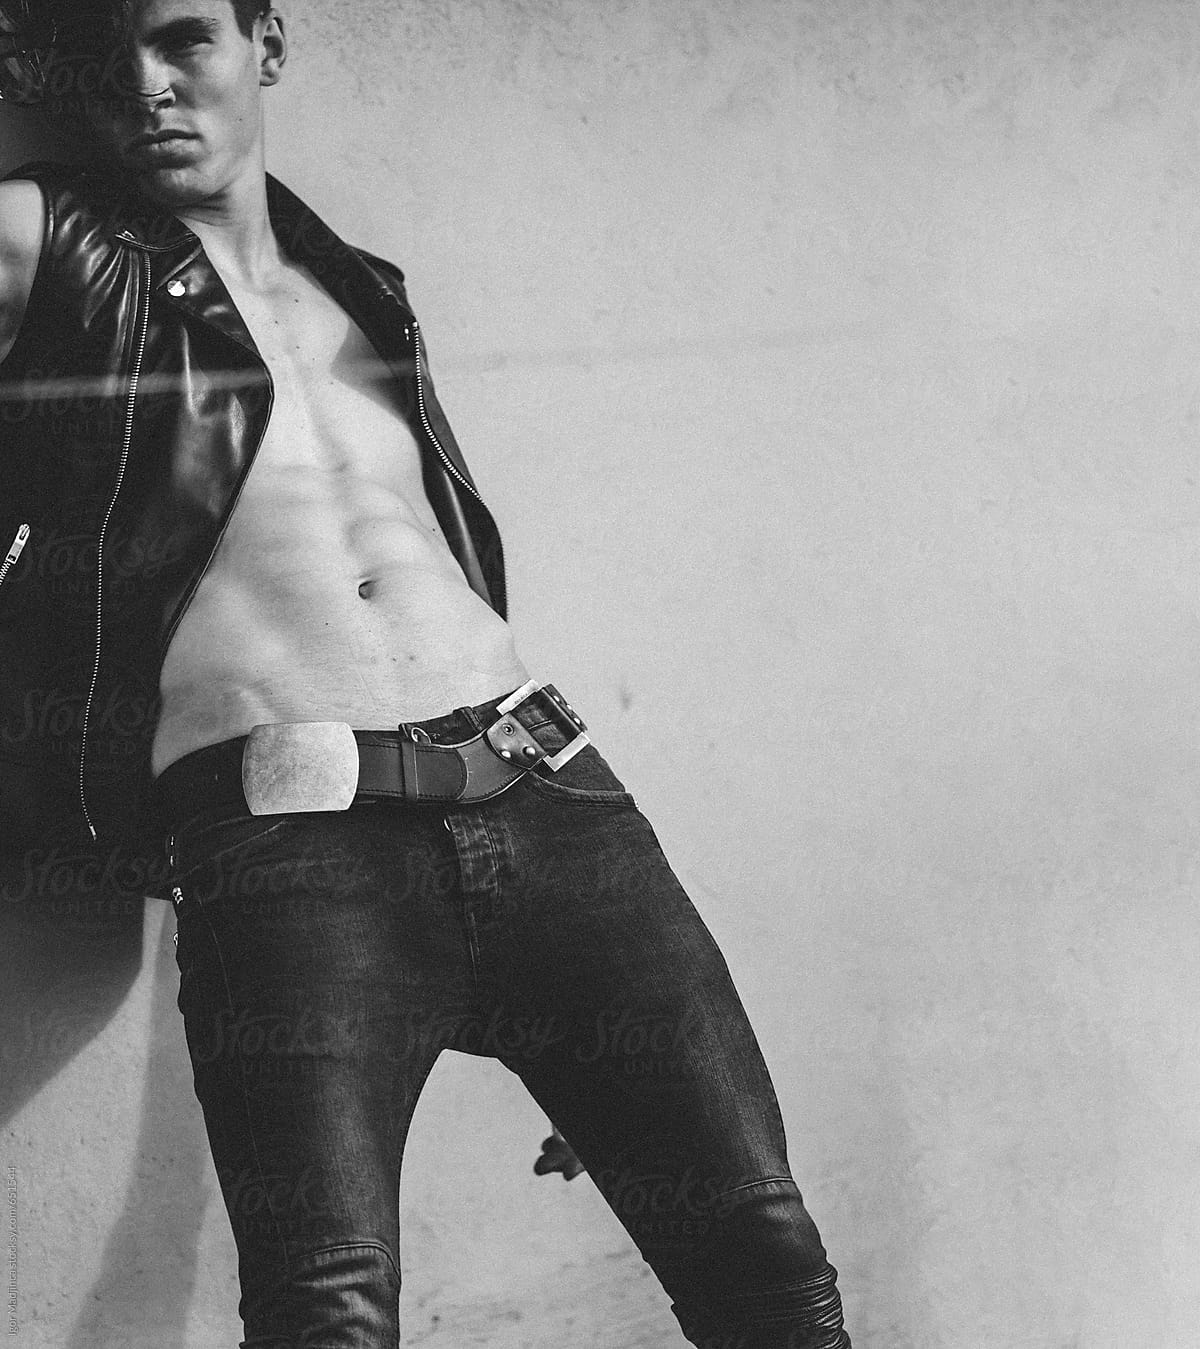 Black Fashion Models Poses: Pose,male Model Dressed In A Black Leather Vest Leaning